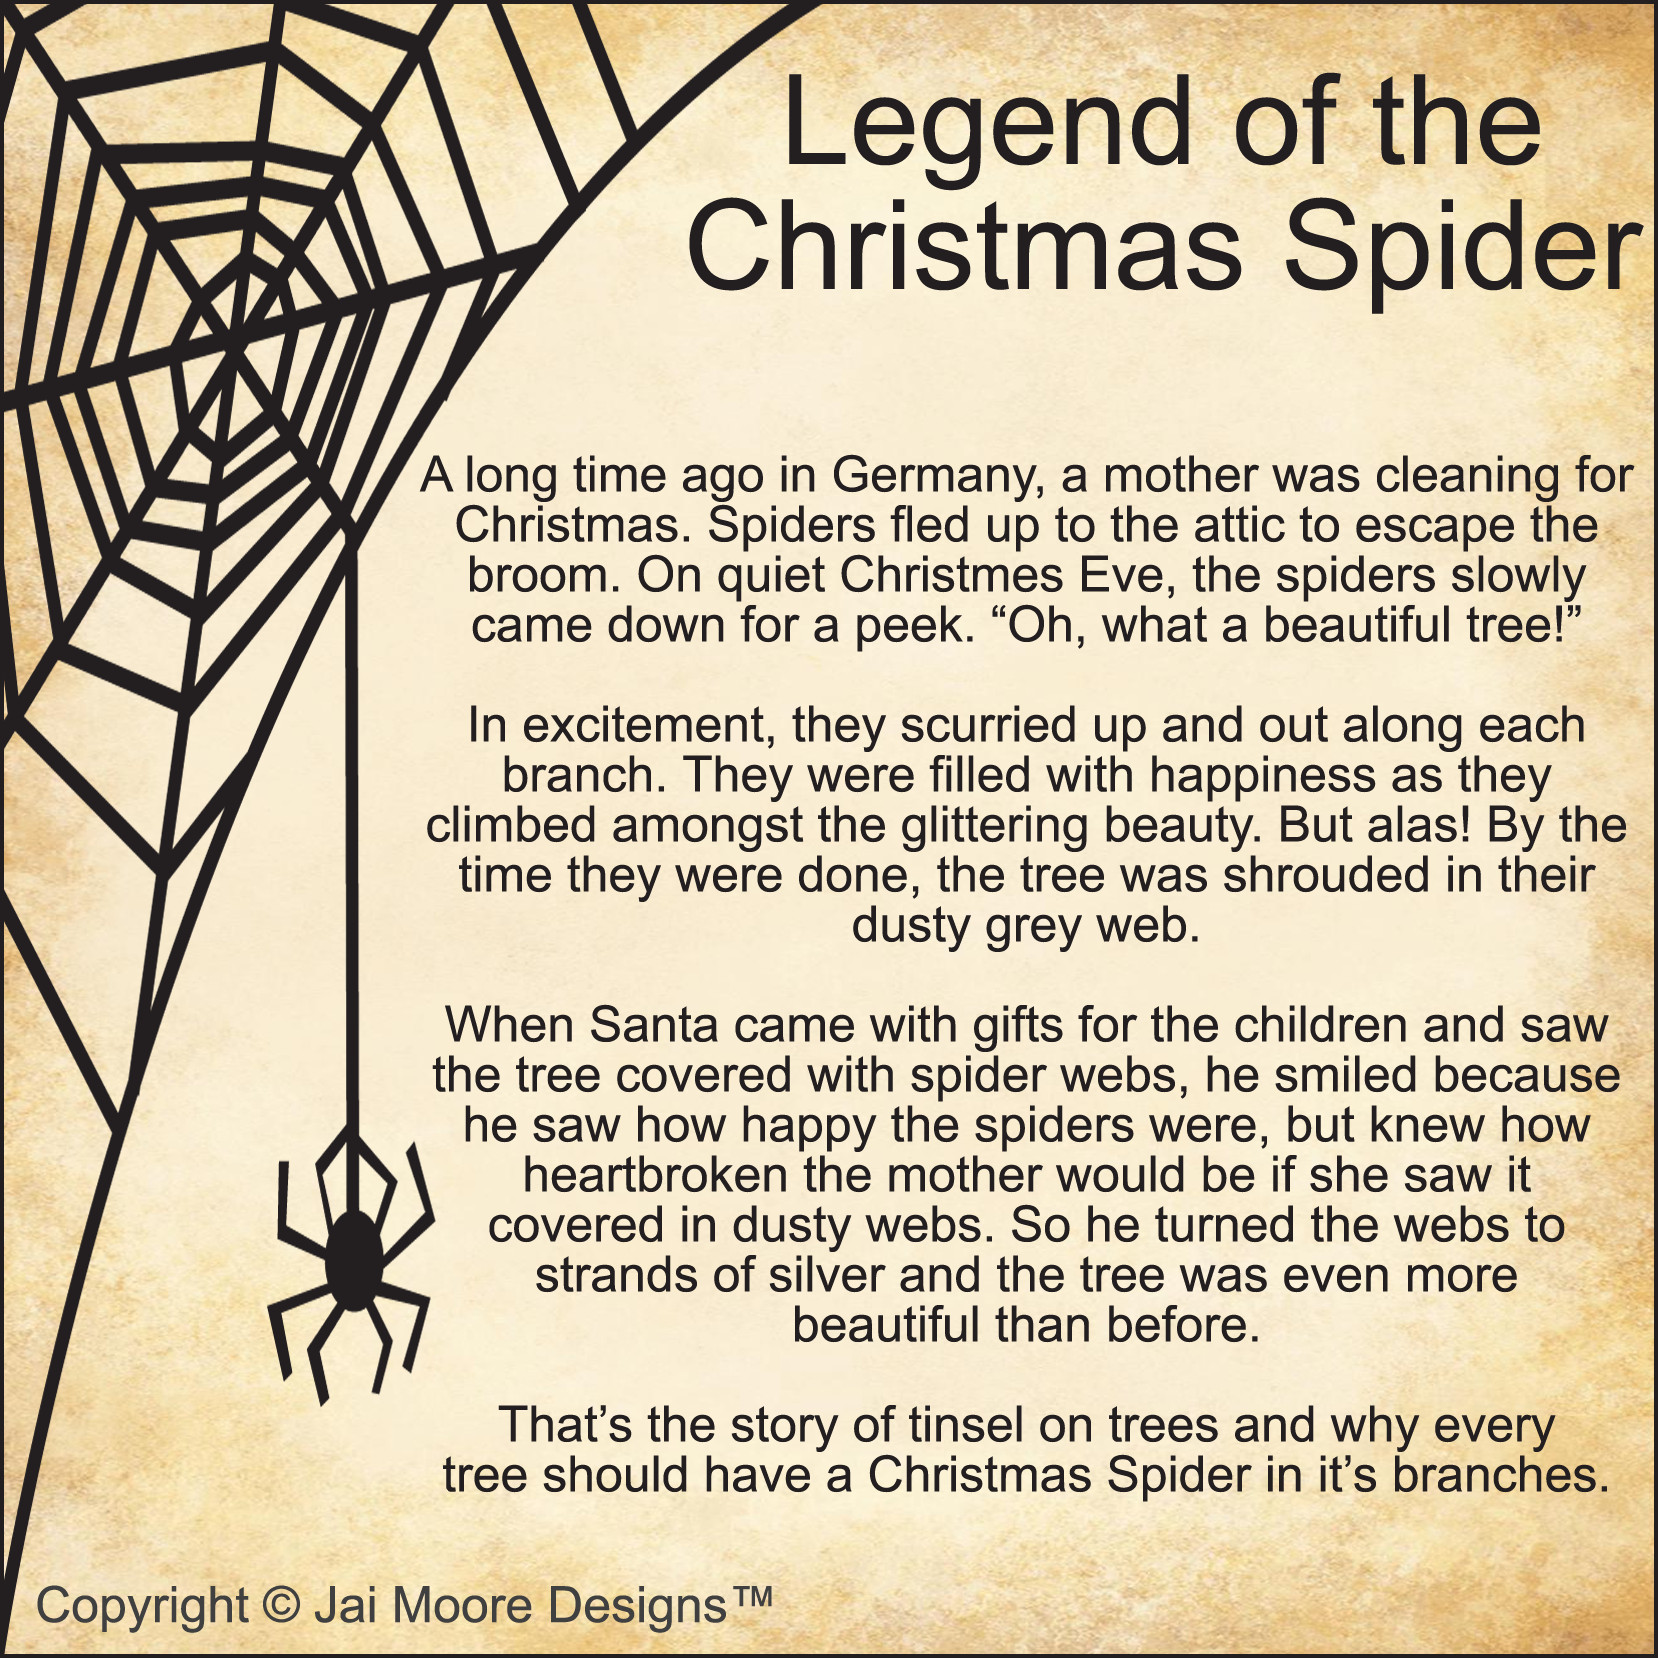 photo about Legend of the Christmas Spider Printable called Witchy Wednesday - Spider and tinsel pre k xmas